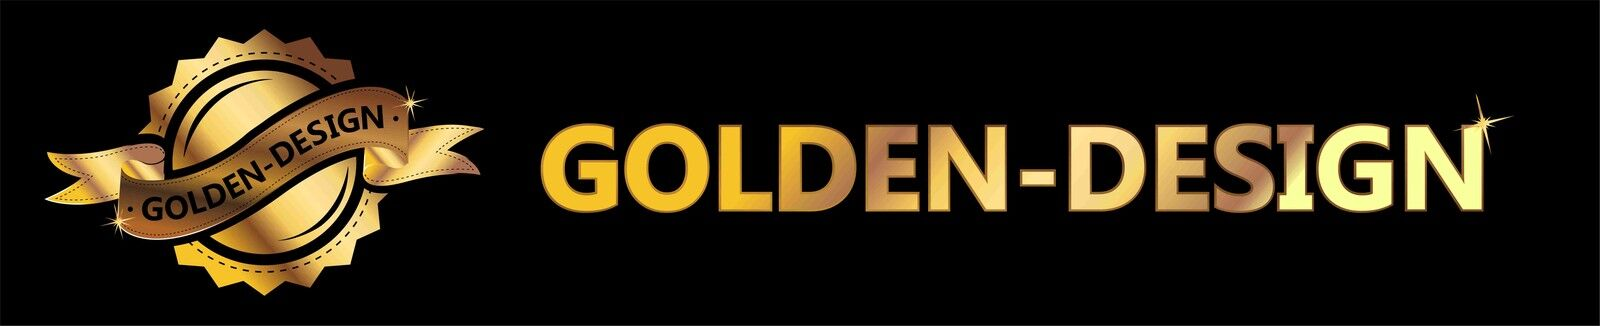 golden-design-13